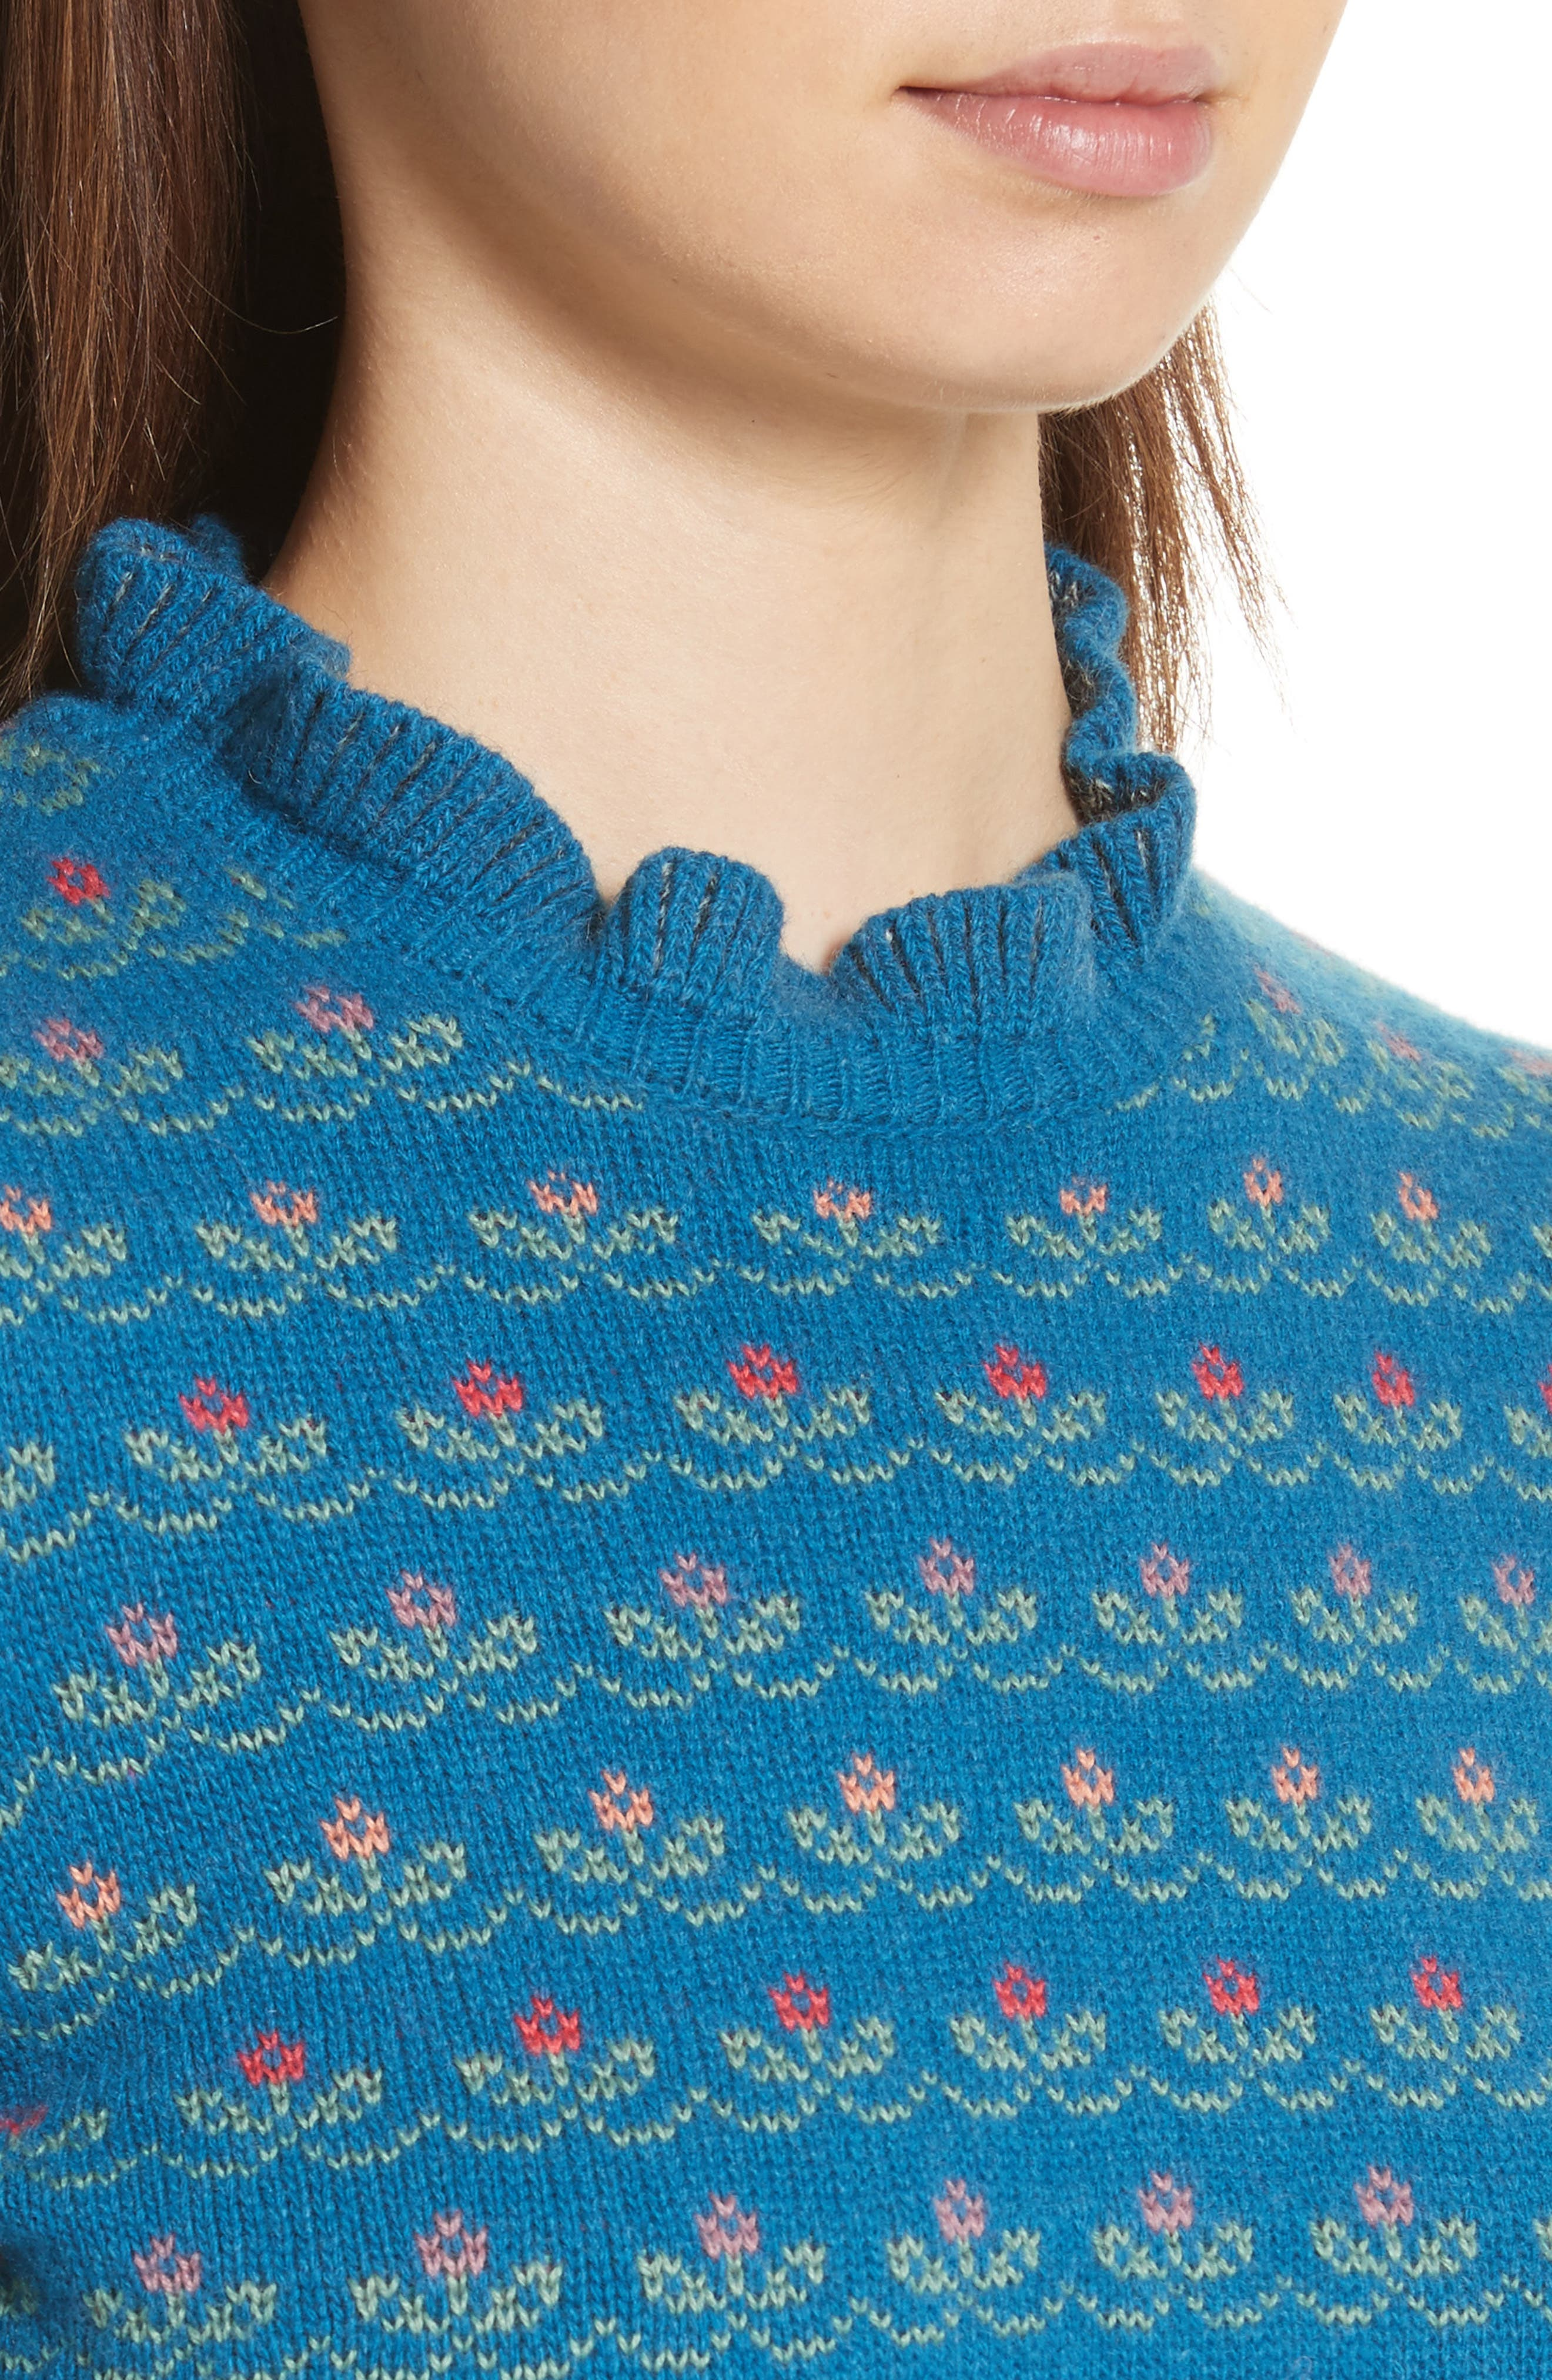 Floral Jacquard Carded Wool Blend Sweater,                             Alternate thumbnail 4, color,                             Lapislazzuli